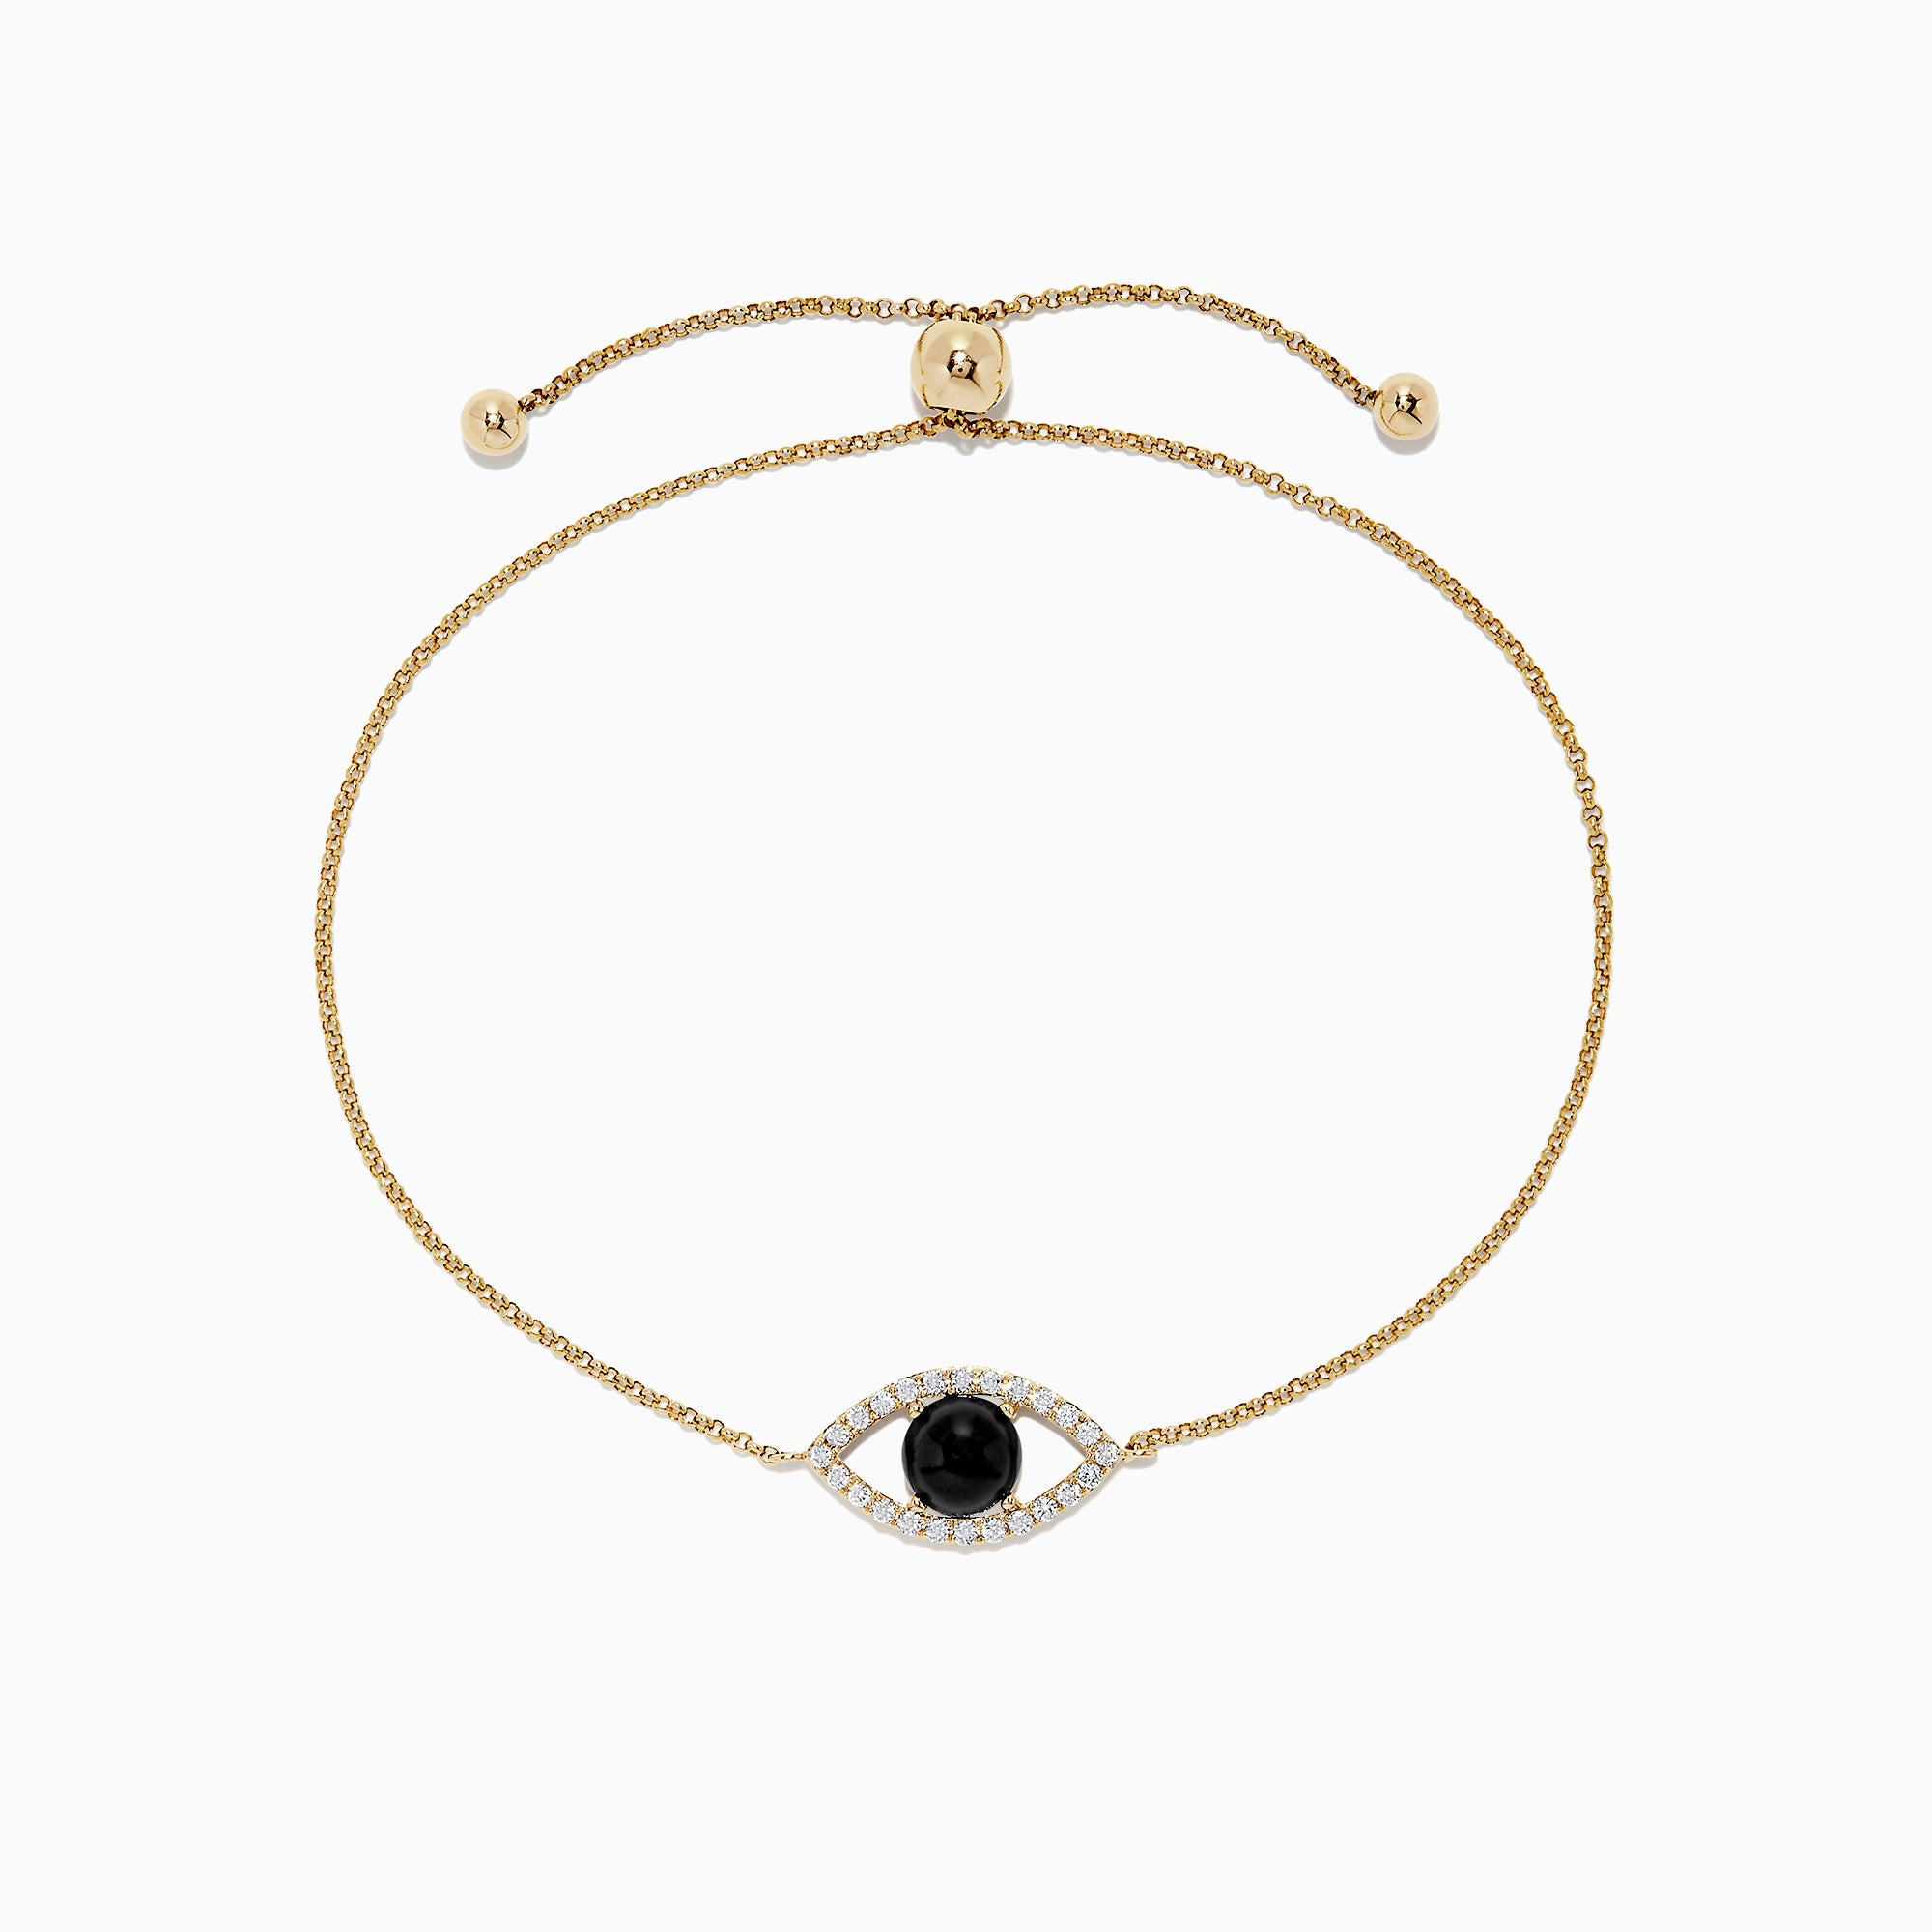 Effy Novelty 14K Yellow Gold Onyx and Diamond Evil Eye Bracelet, 1.36 TCW